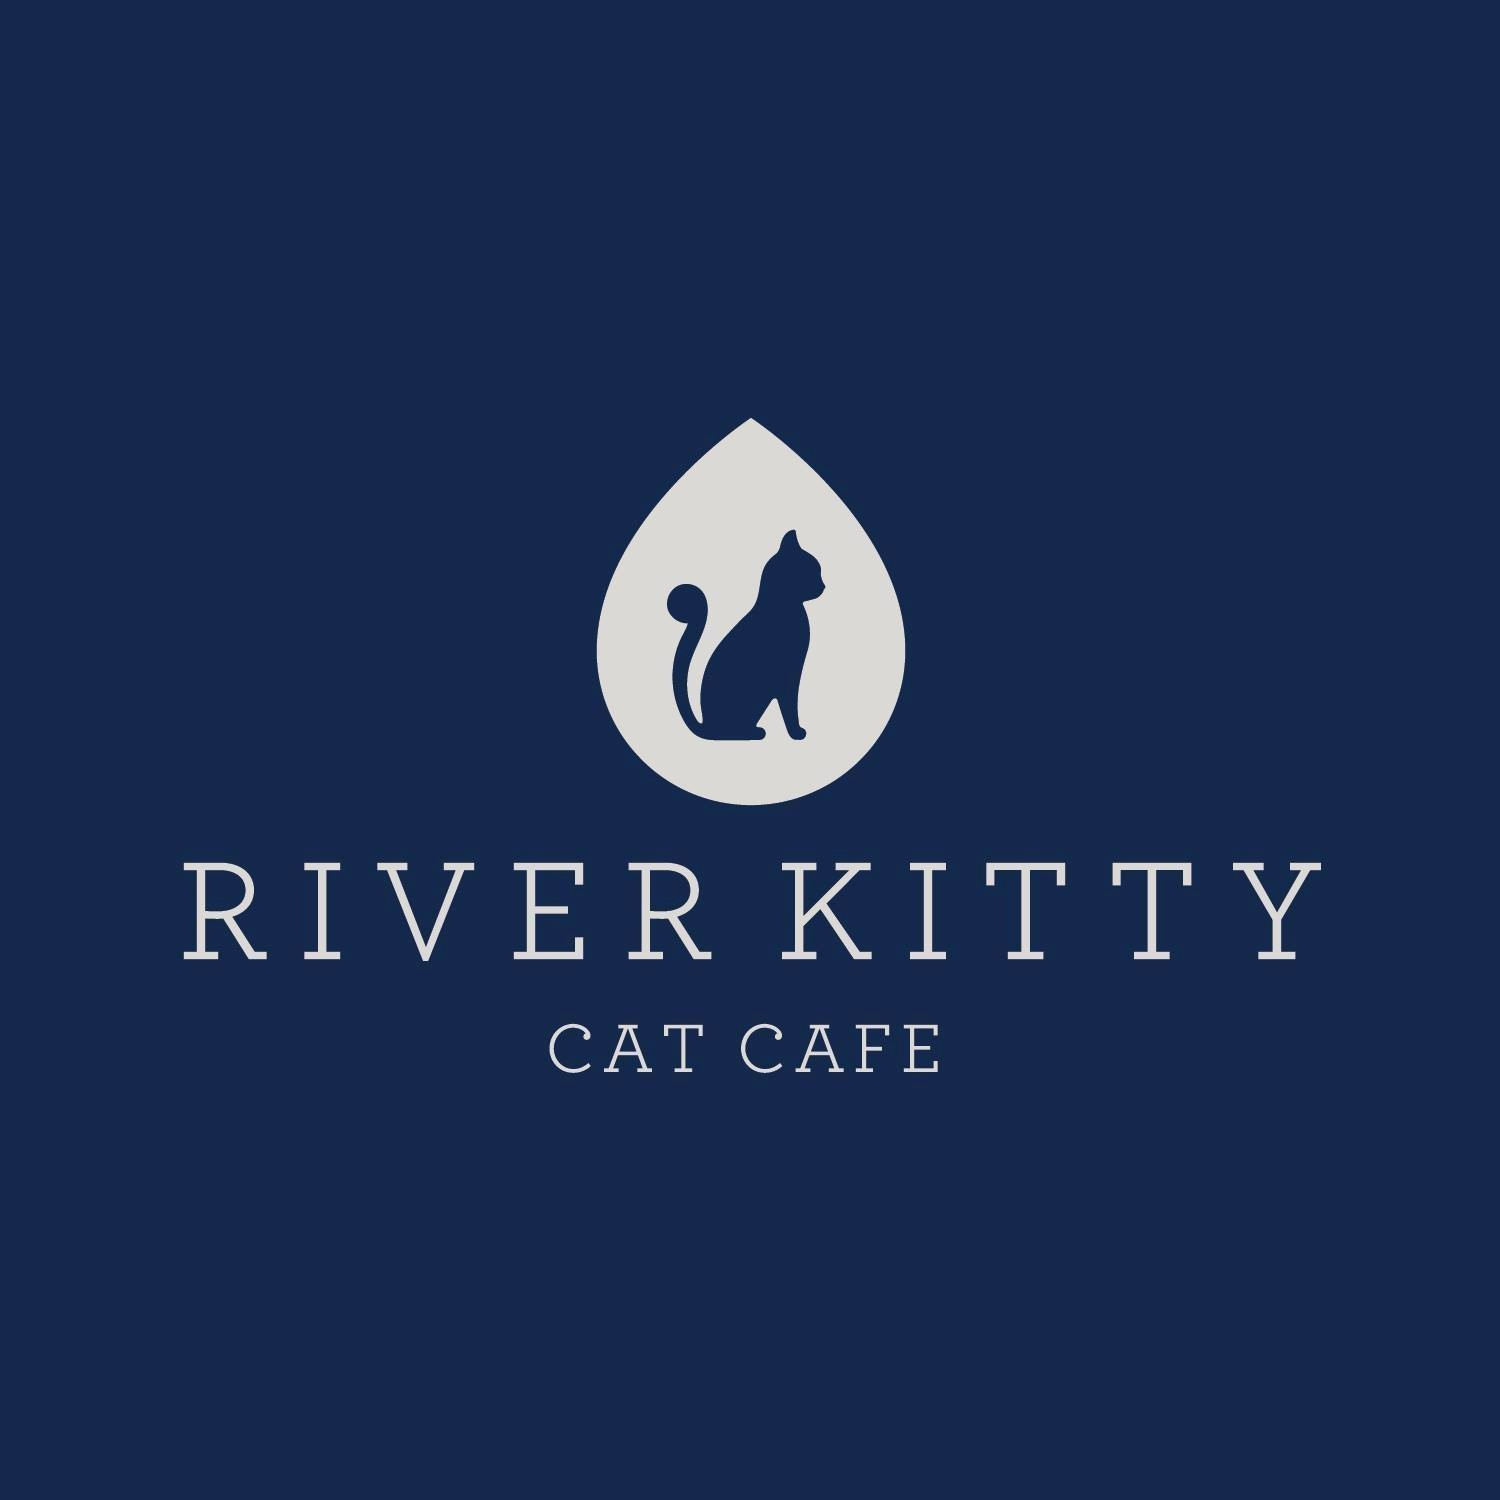 River kitty cat cafe logo